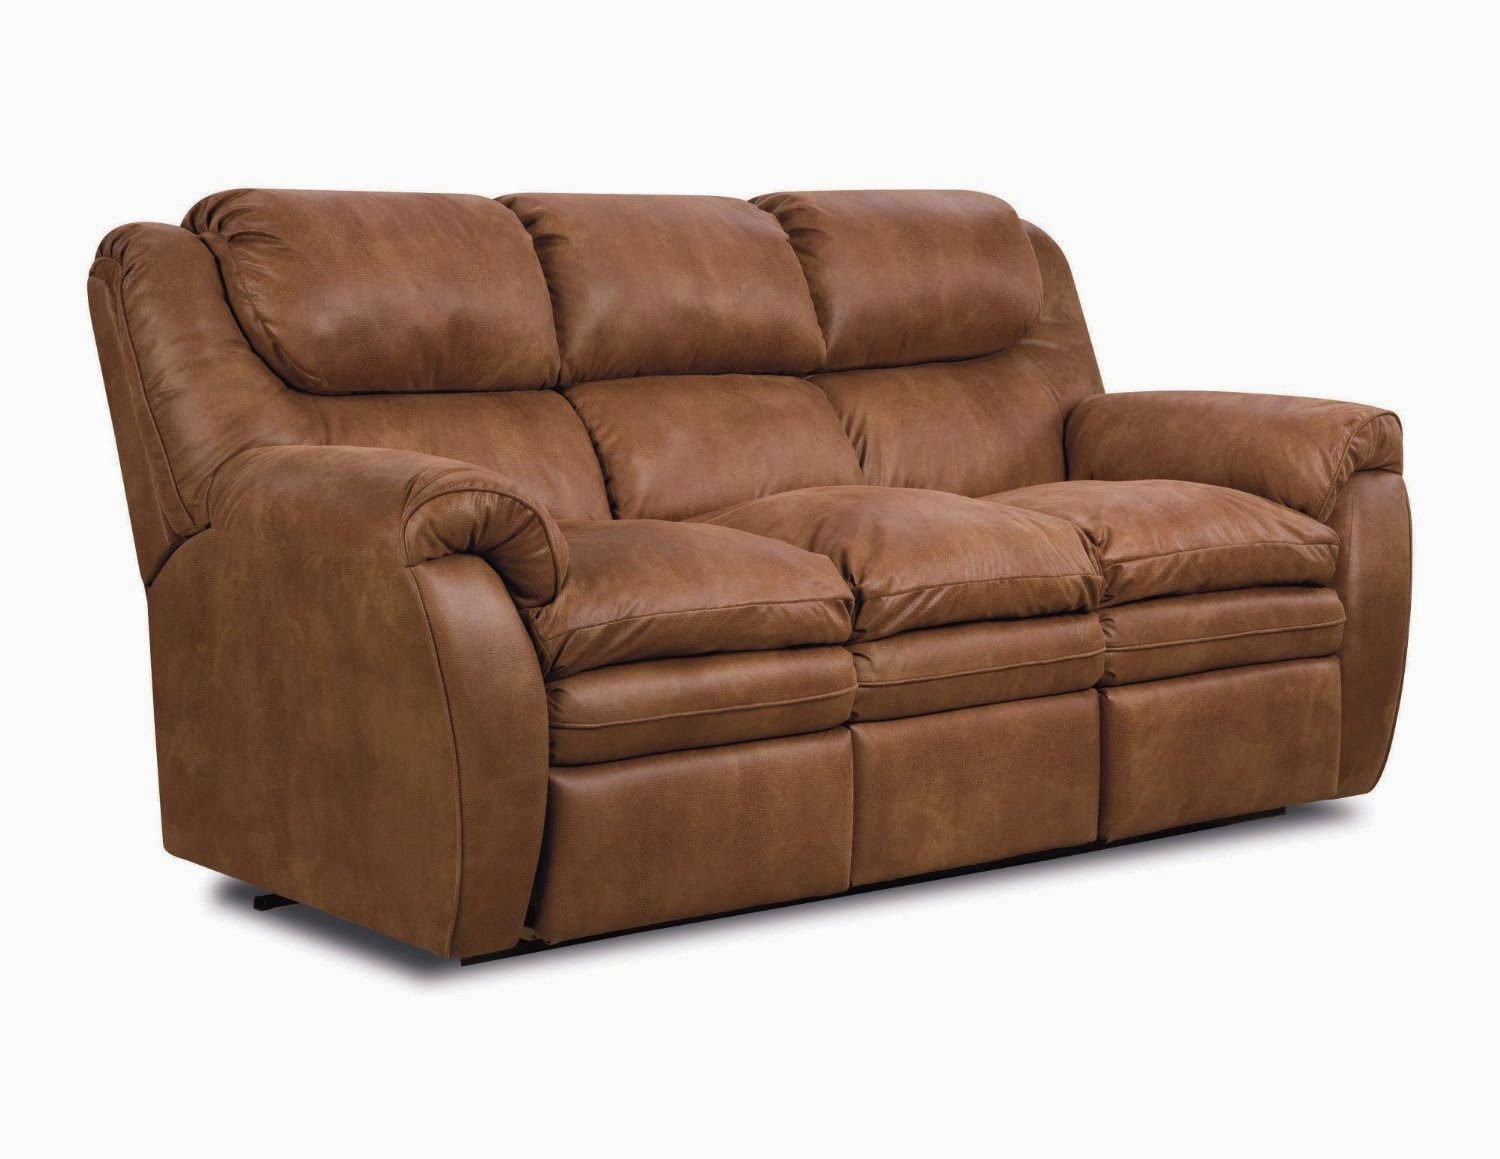 Cheap reclining sofas sale lane double reclining sofa with storage drawer Sofa loveseat